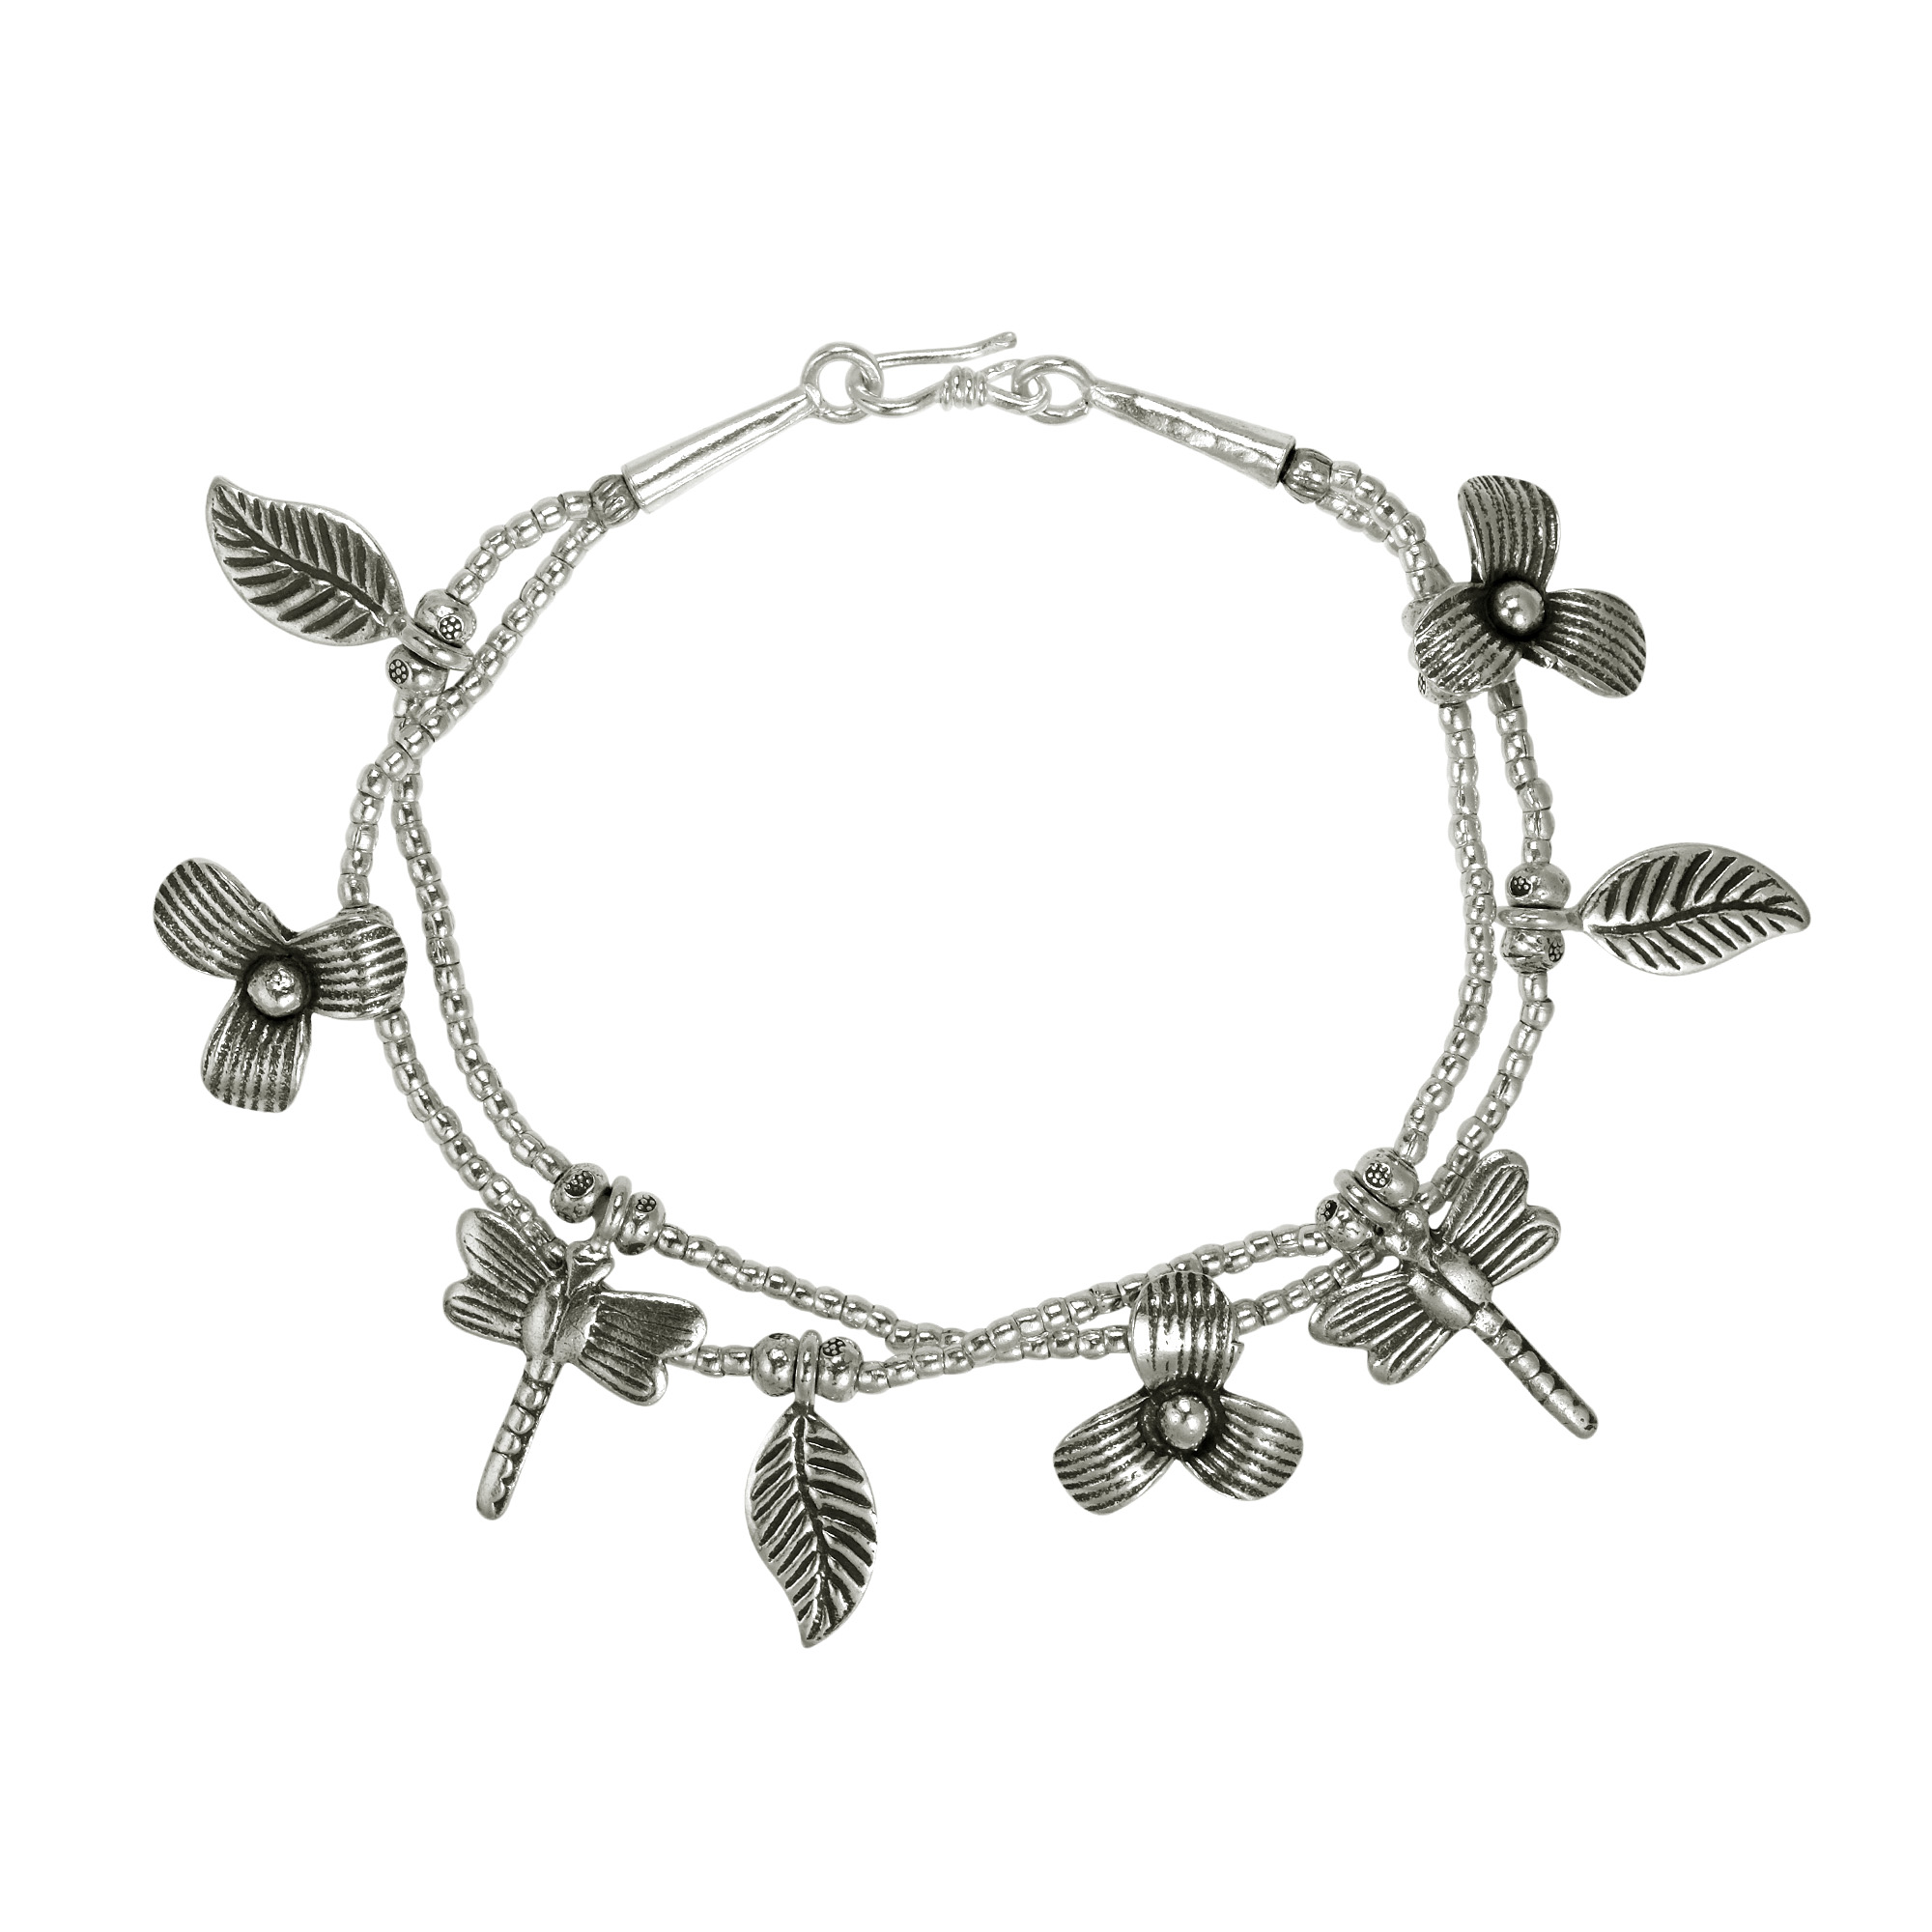 products beaded the this handmade garden contains percent dragonfly details features to tribe symbolizes pure plain intricate pb bracelet hill bracelets which tribal silver